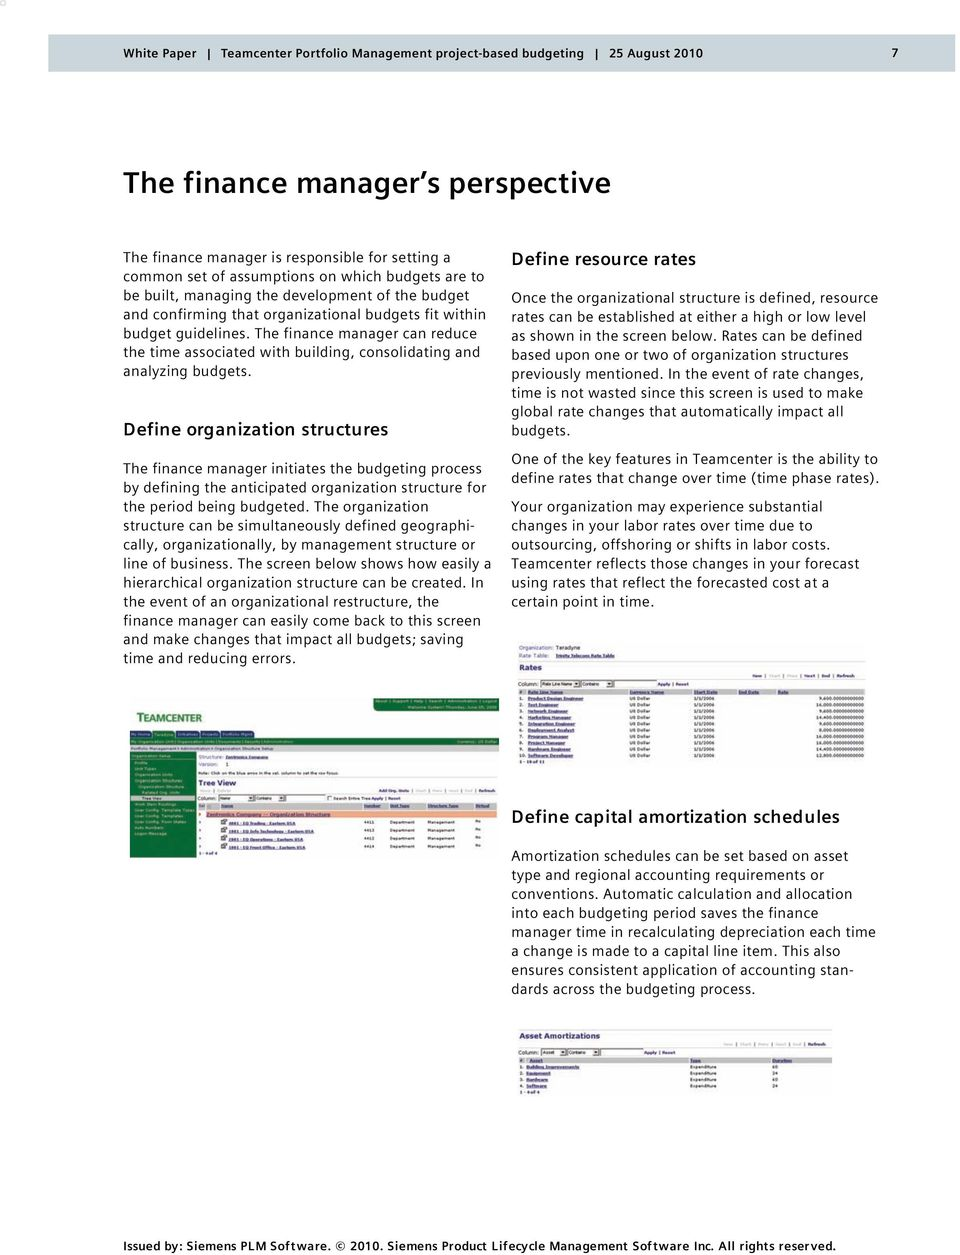 The finance manager can reduce the time associated with building, consolidating and analyzing budgets.